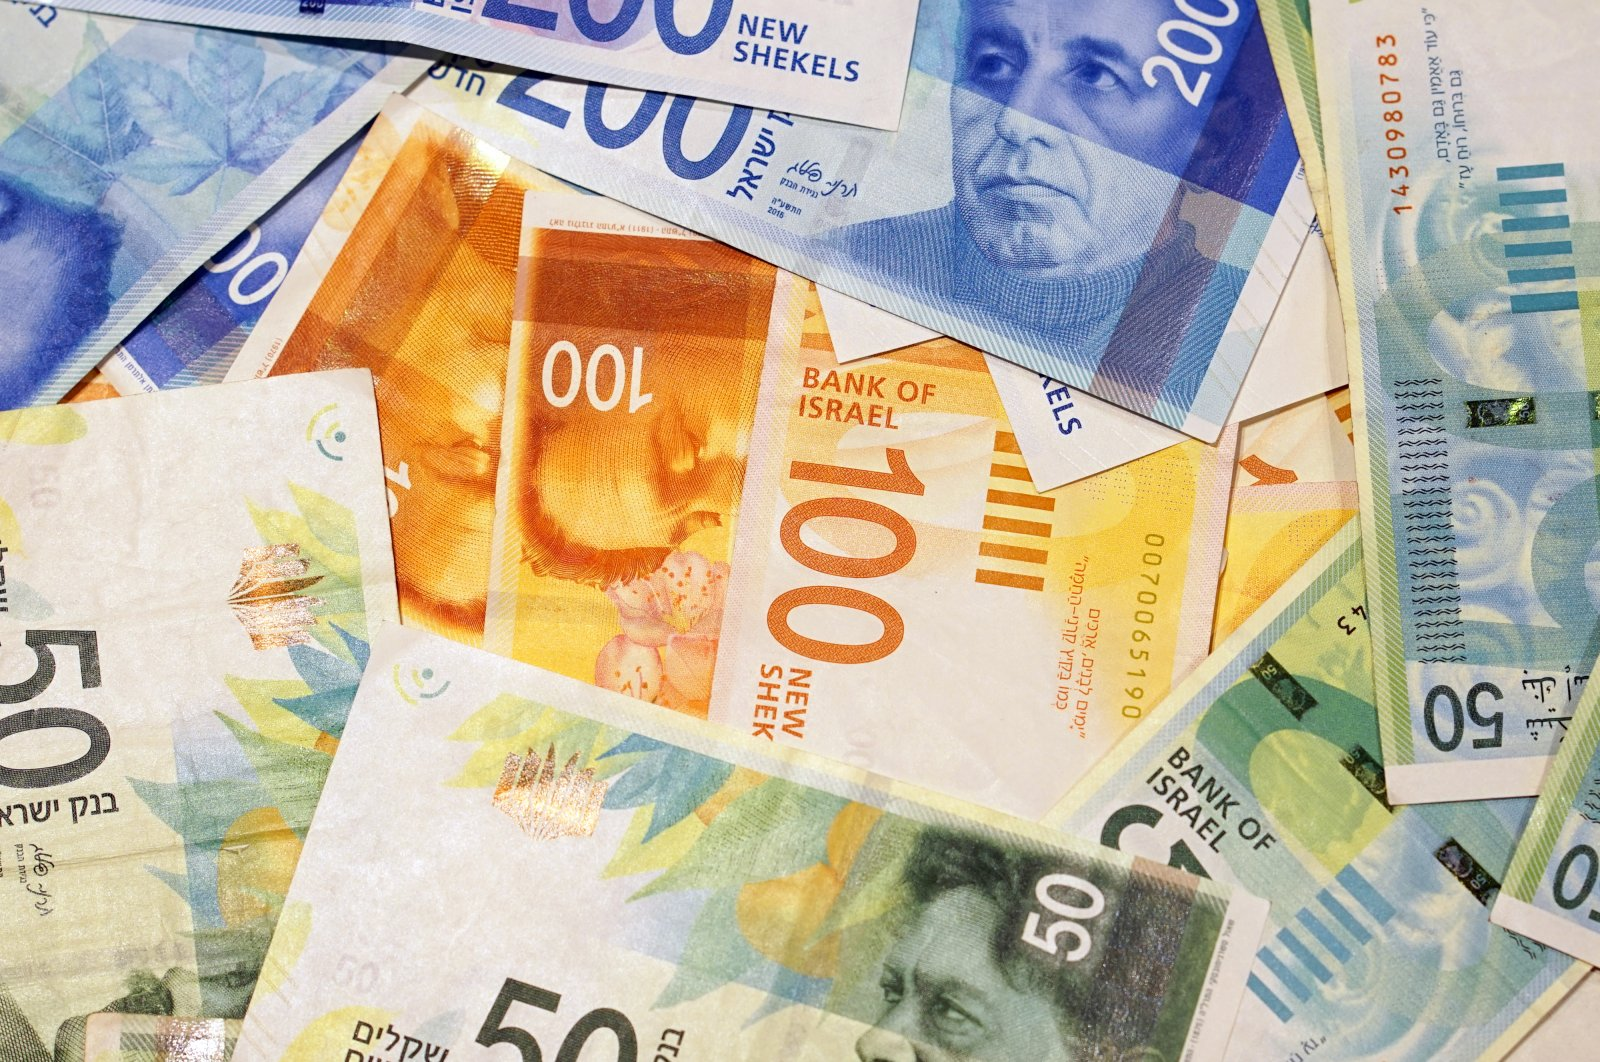 Israeli banknotes of 50, 100 and 200 shekels seen in this undated file photo. (Shutterstock Photo)